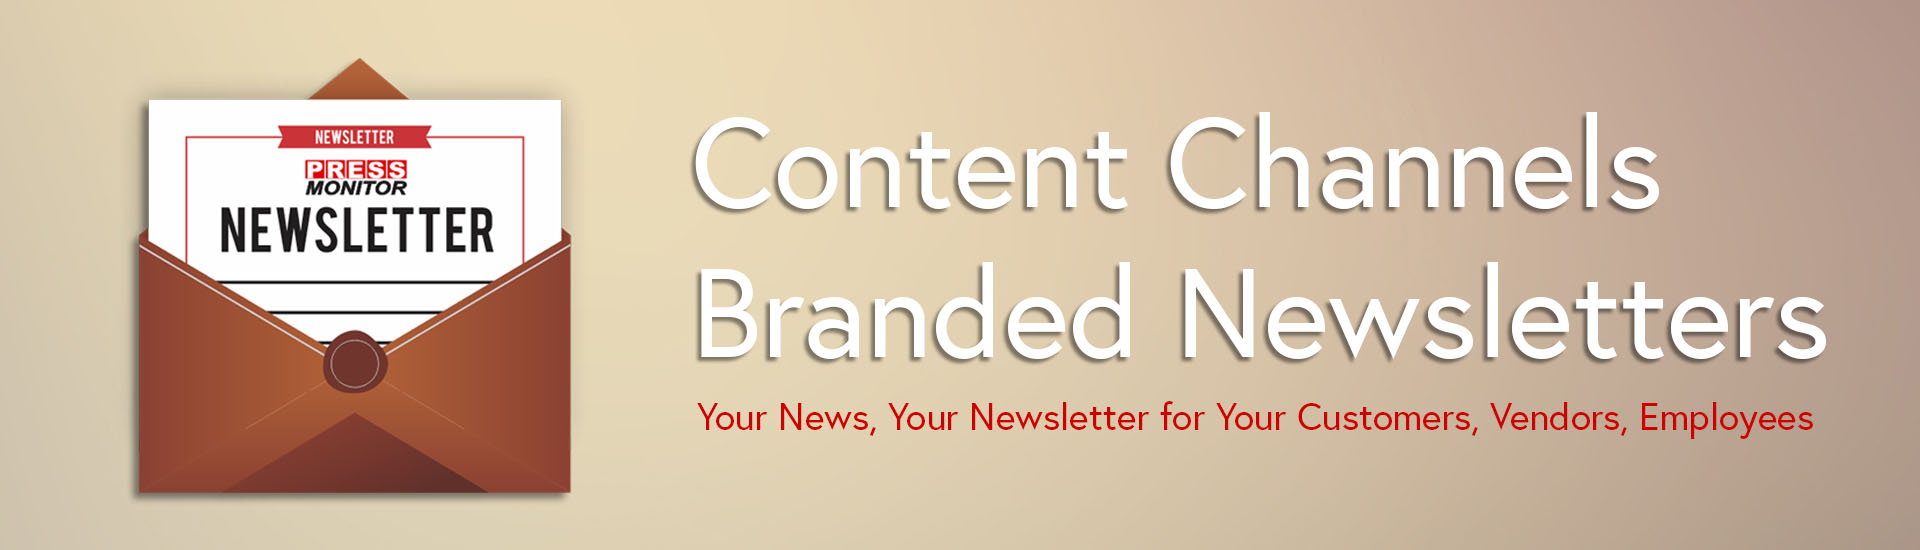 Content Channels-Branded Newsletters